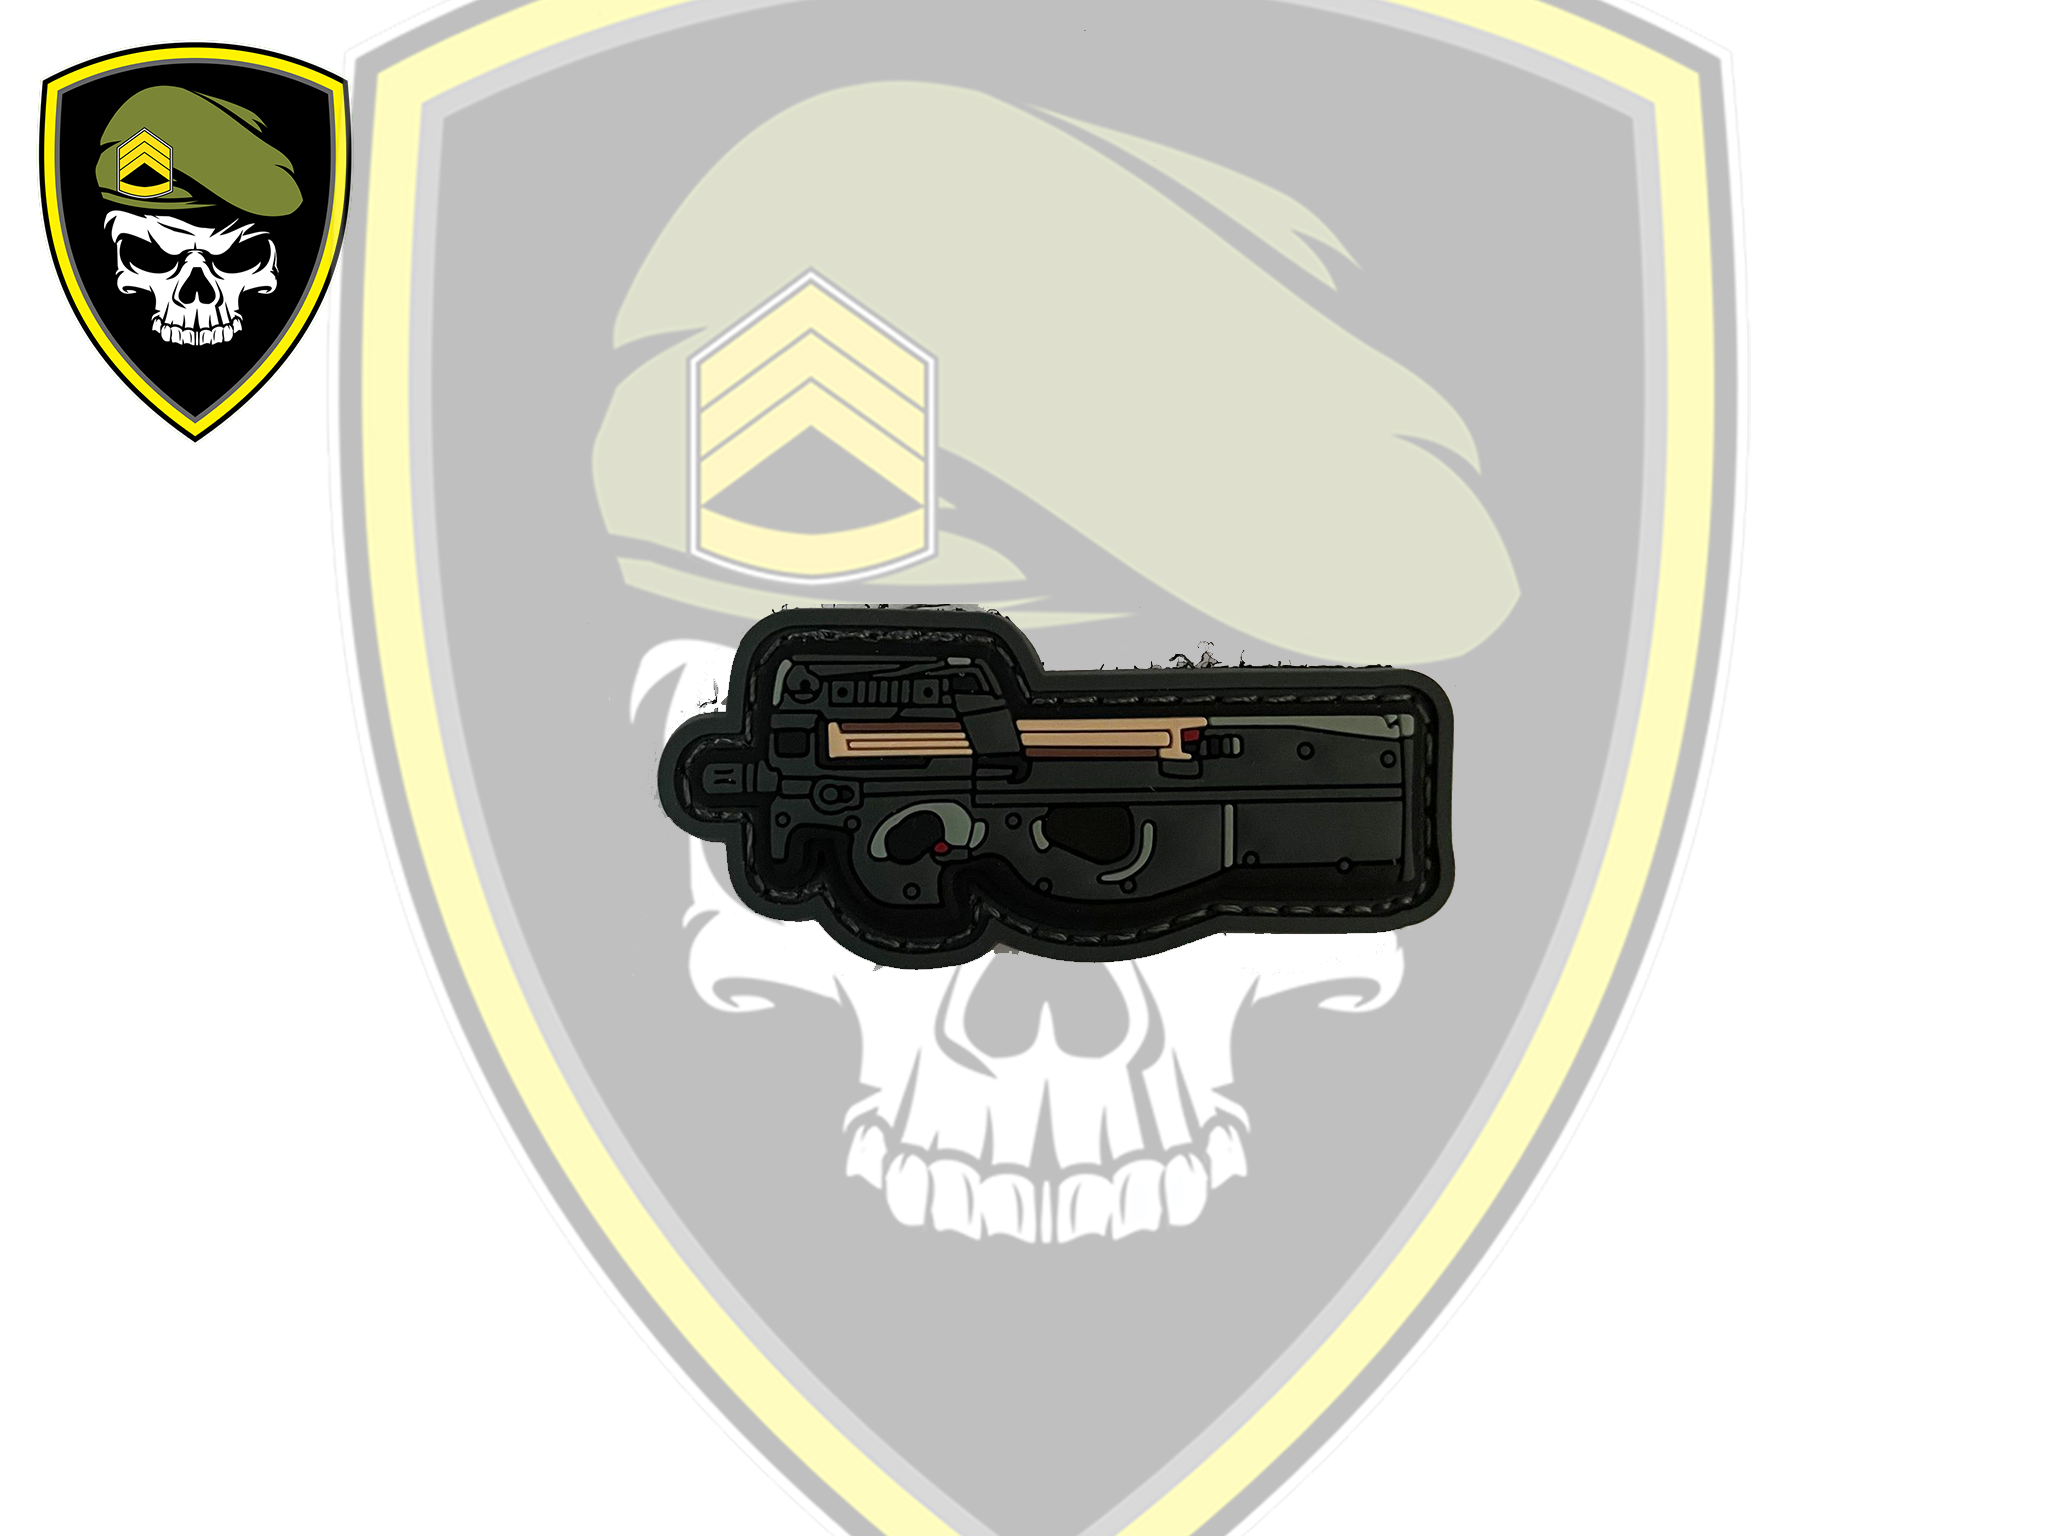 P90 Velcro Patch - Command Elite Hobbies